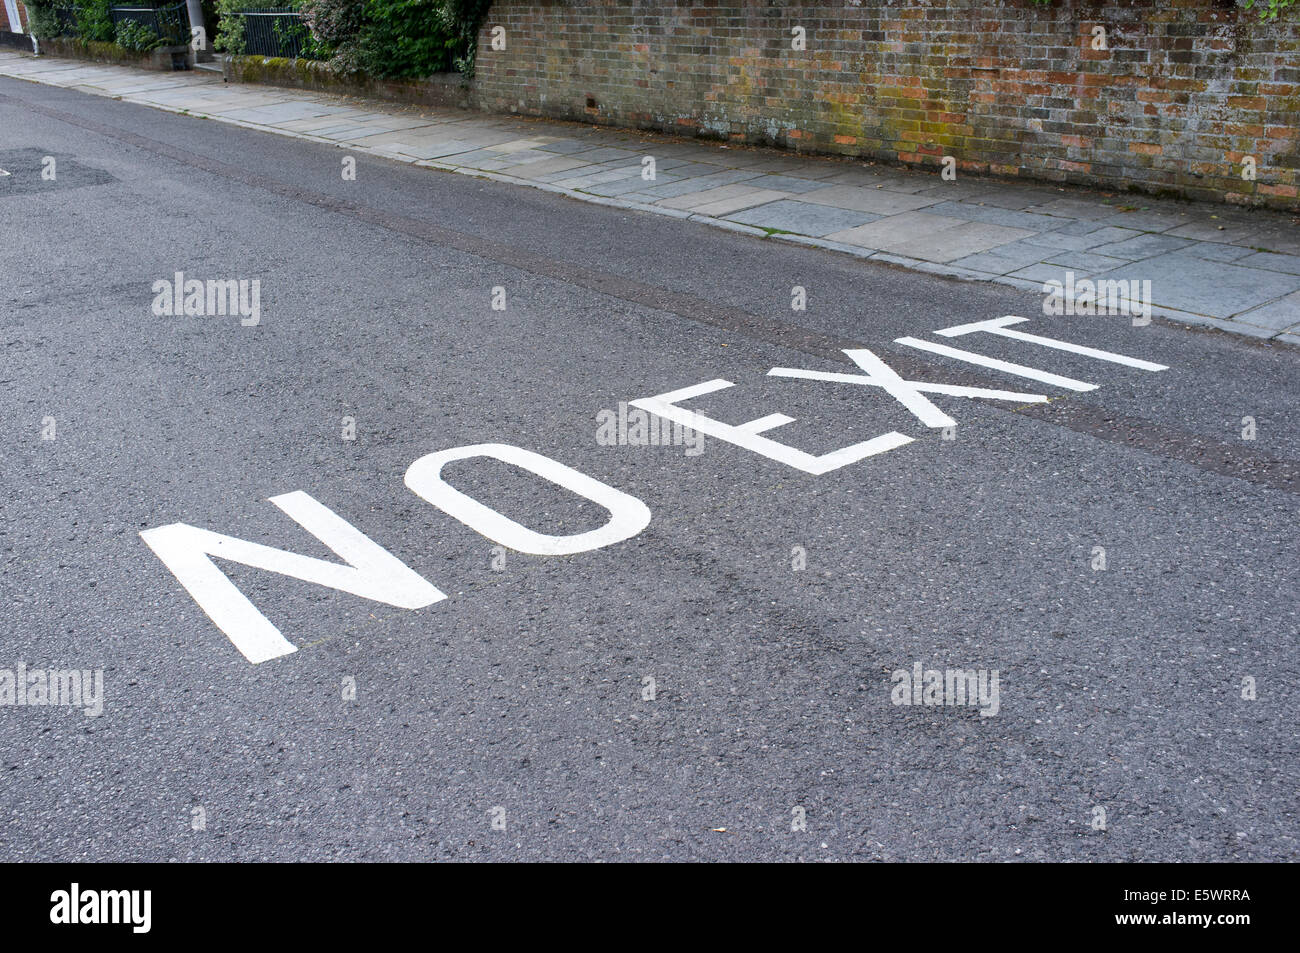 White painted no exit road markings UK - Stock Image